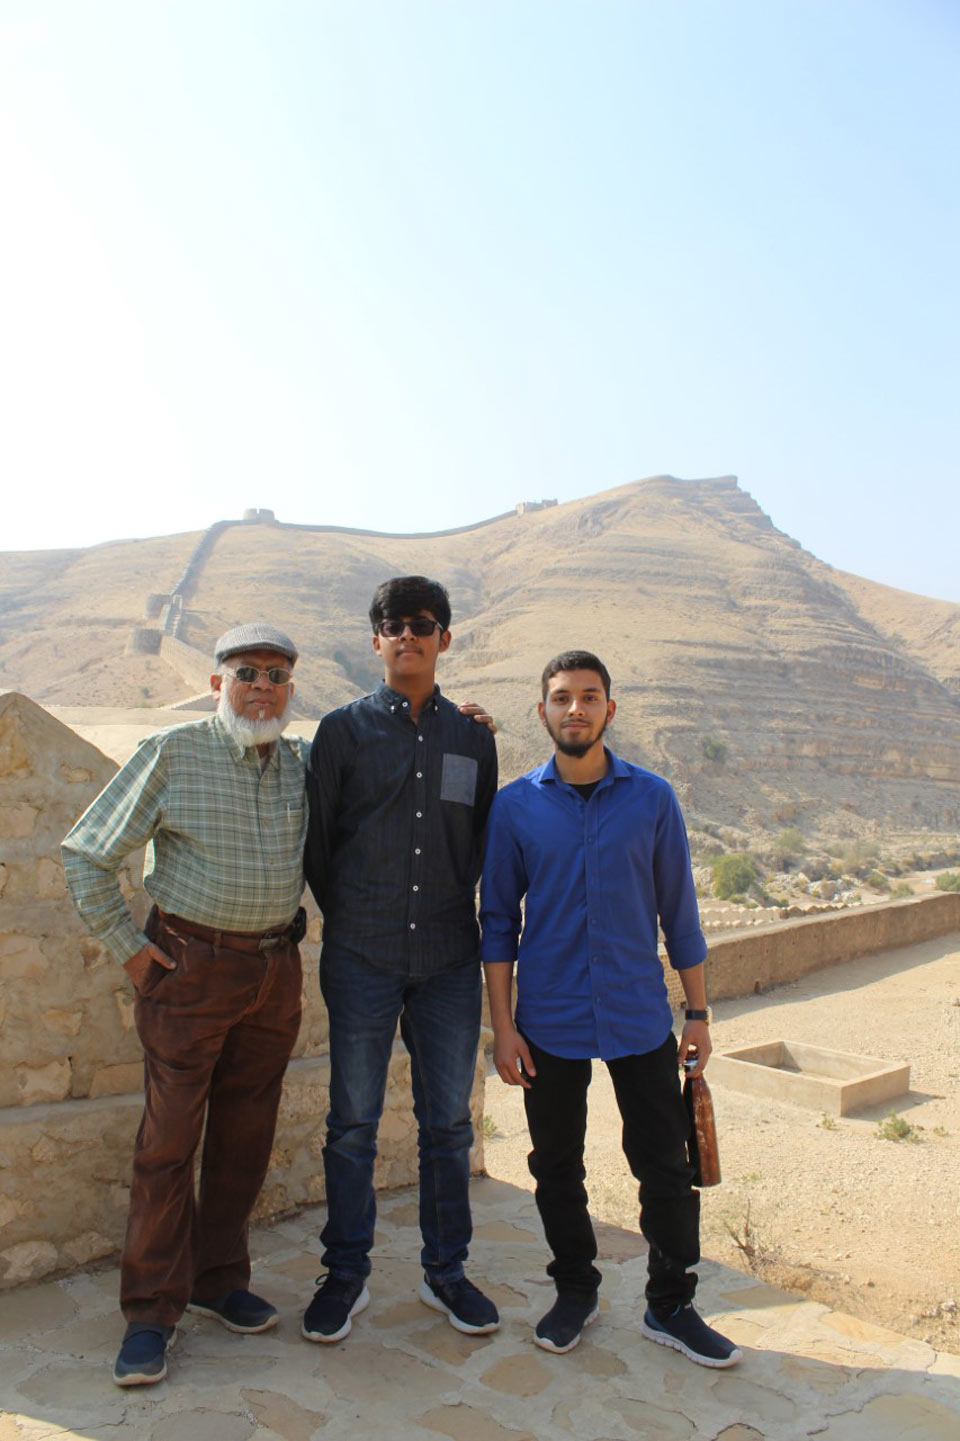 Engr. Iqbal Khan, Habib Ur Rehman and Engr. Obaid Ur Rehman, while going up from the stairs